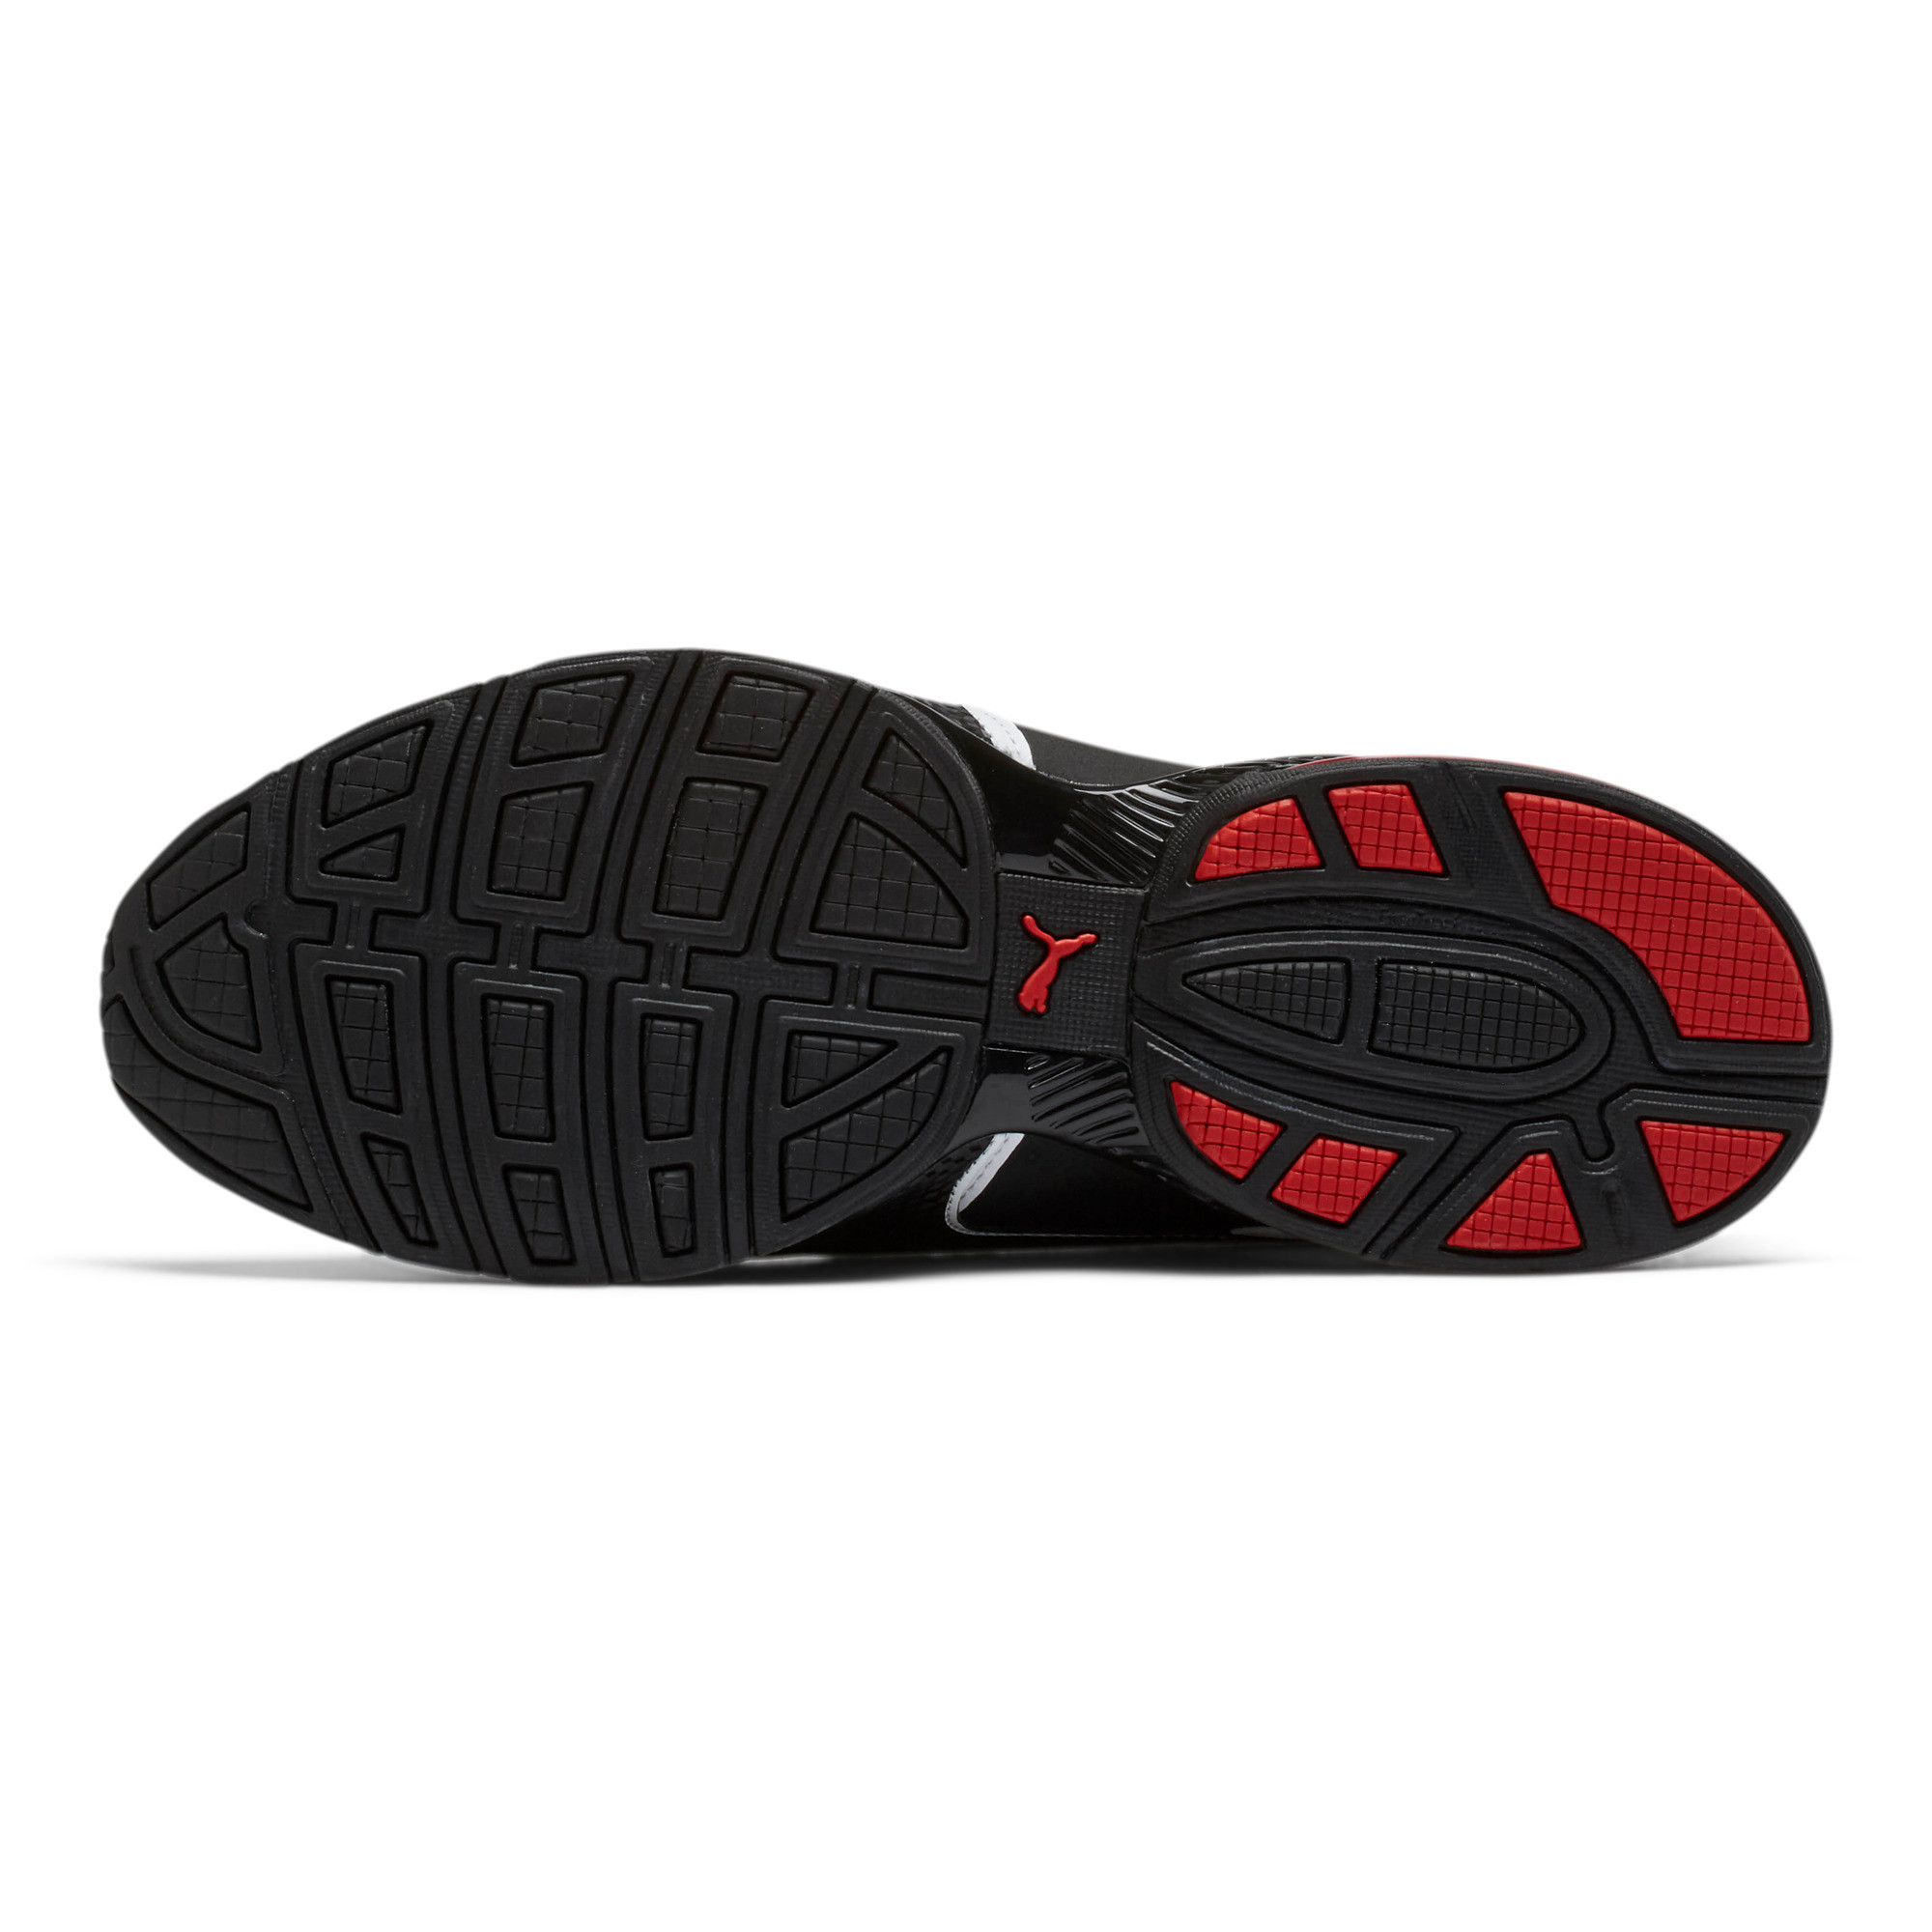 PUMA-Men-039-s-CELL-Surin-2-FM-Running-Shoes thumbnail 19